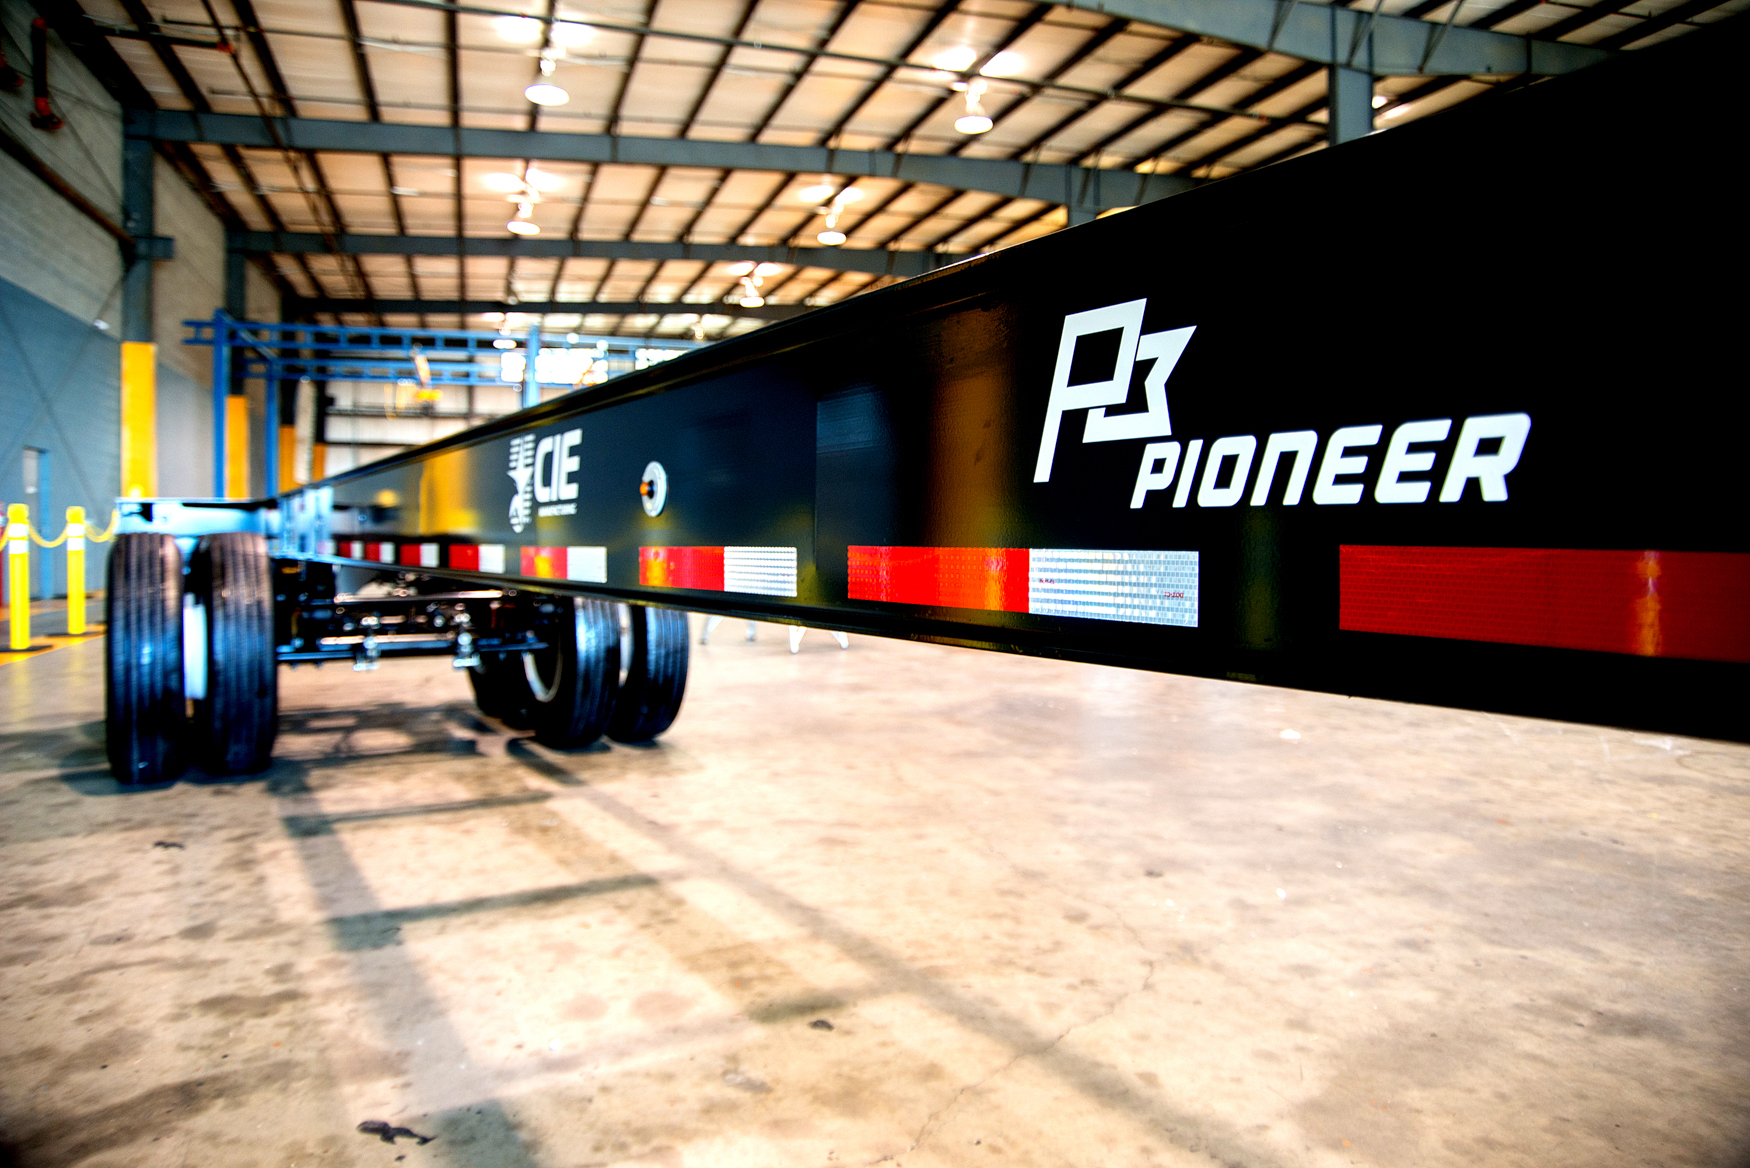 CIE Ramps up Intermodal Container Chassis Production